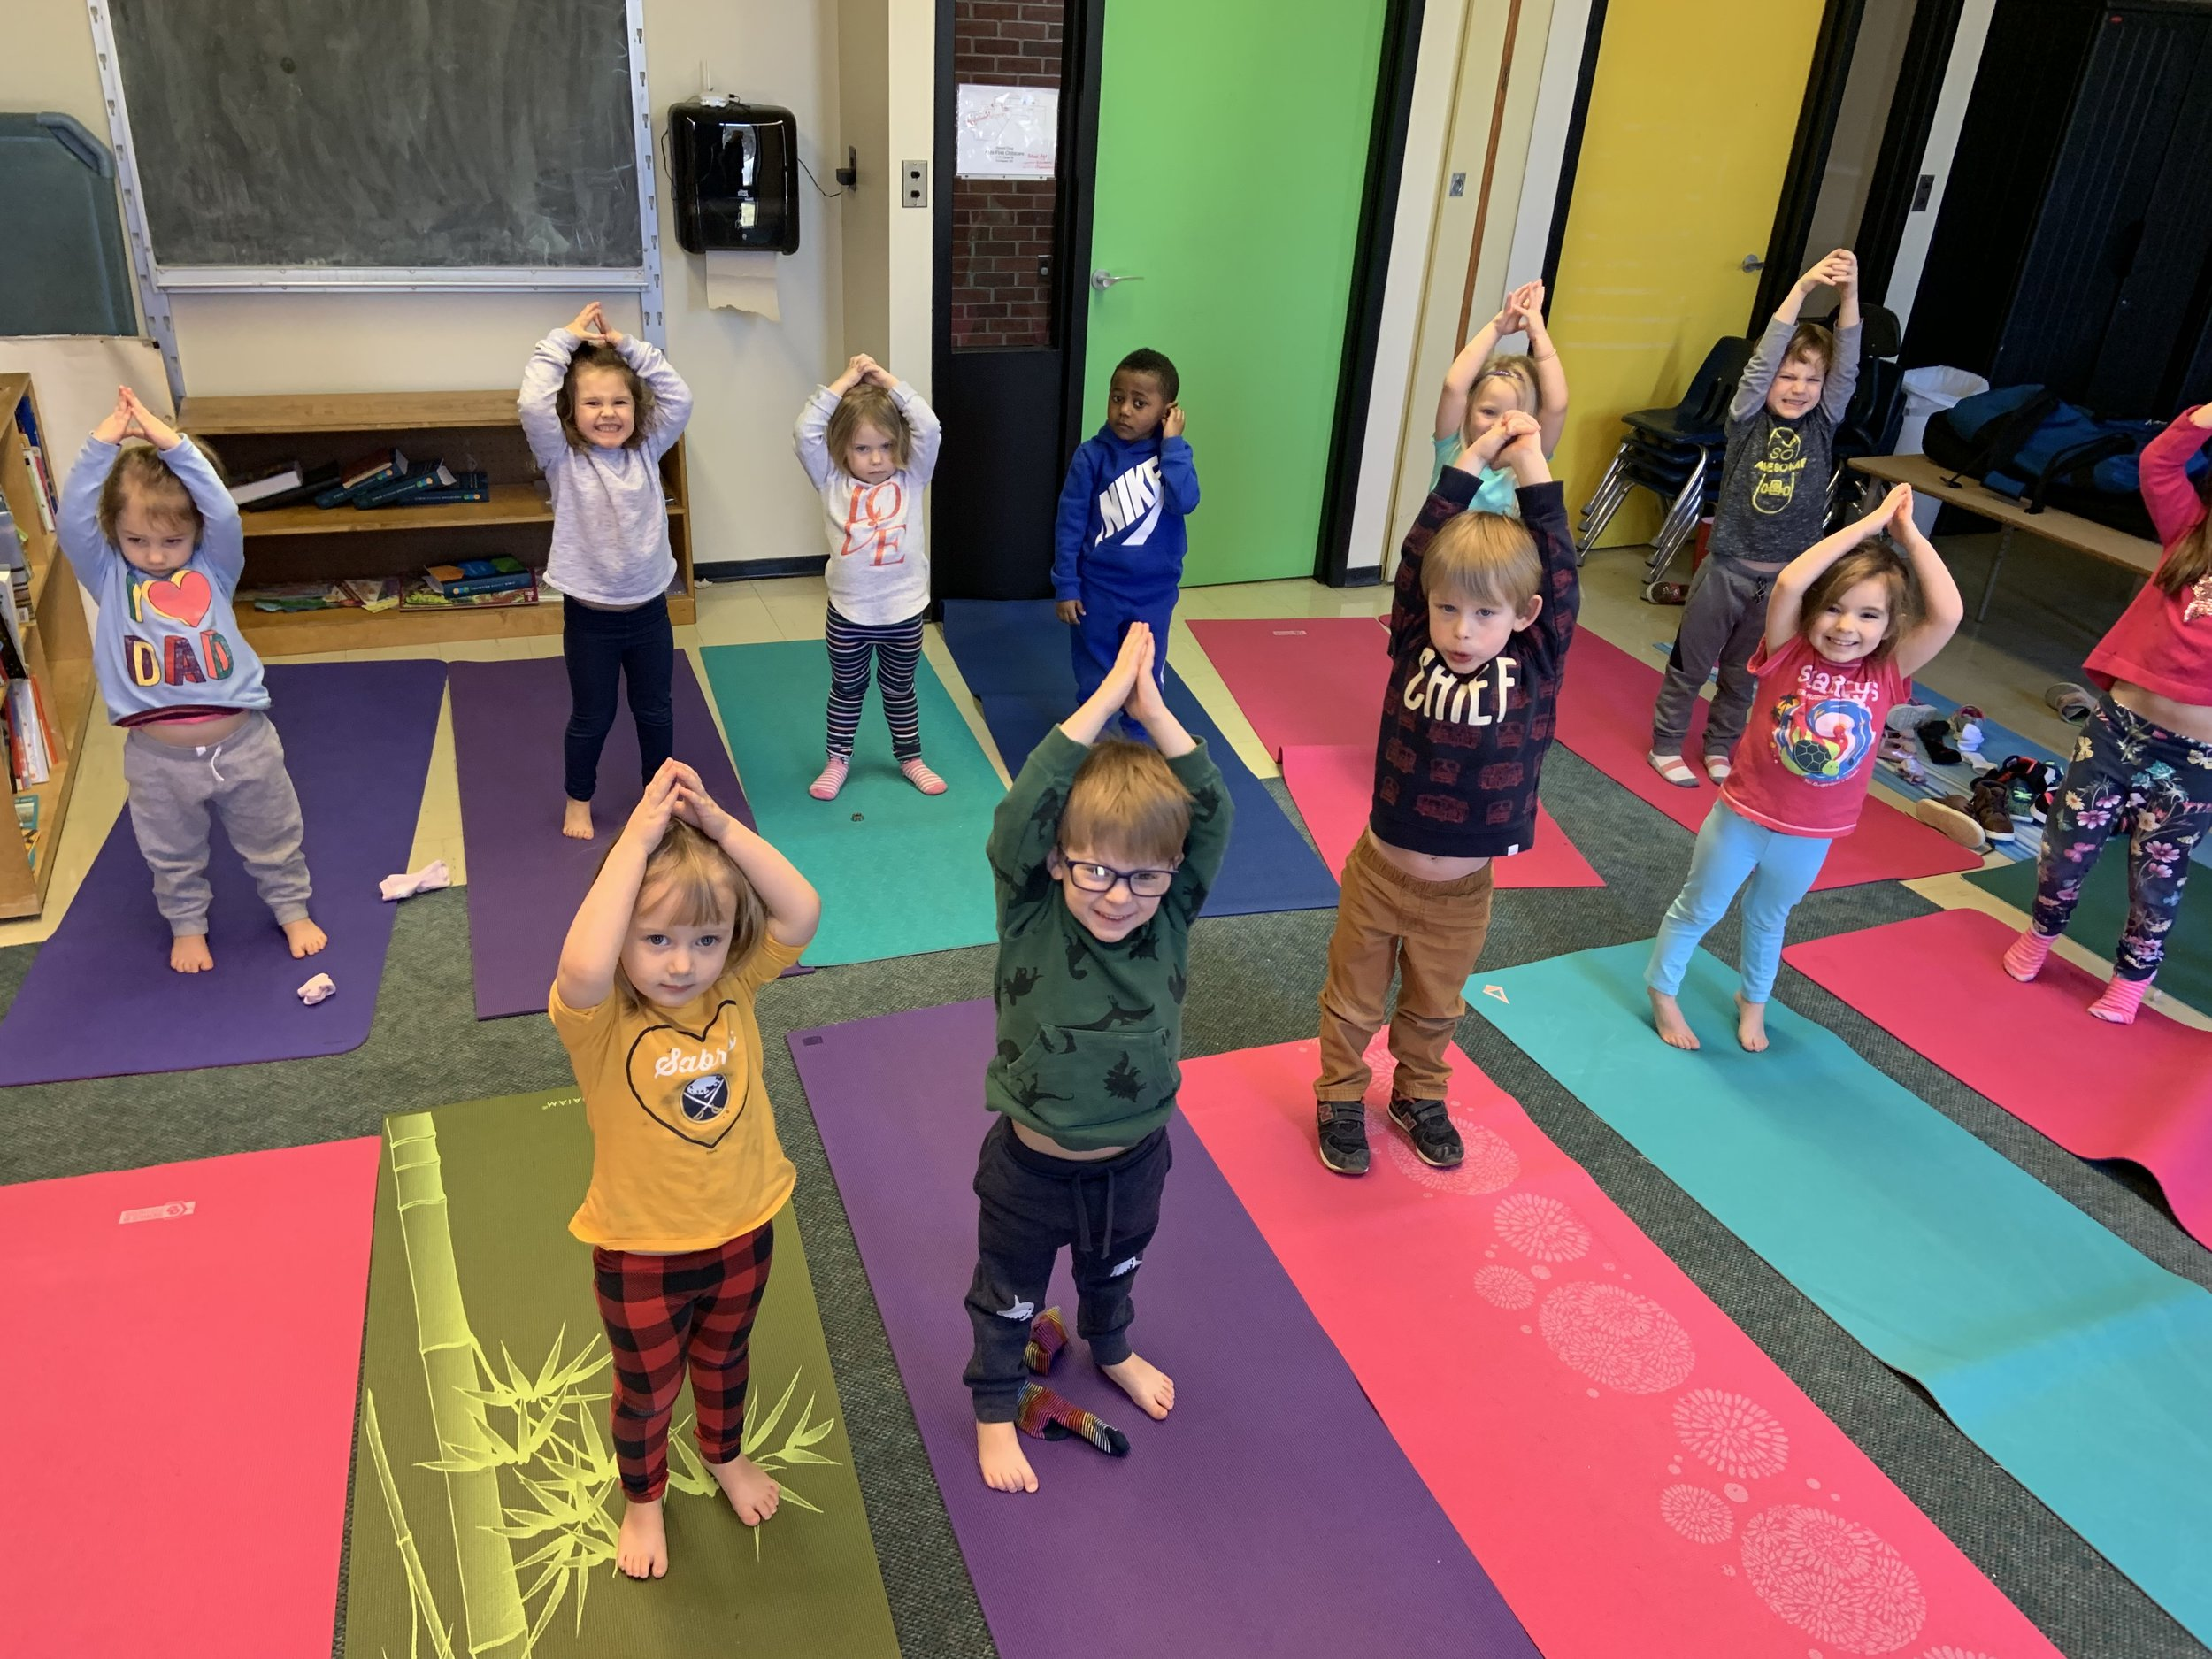 Yoga for Preschools . The happiest, tallest mountains!